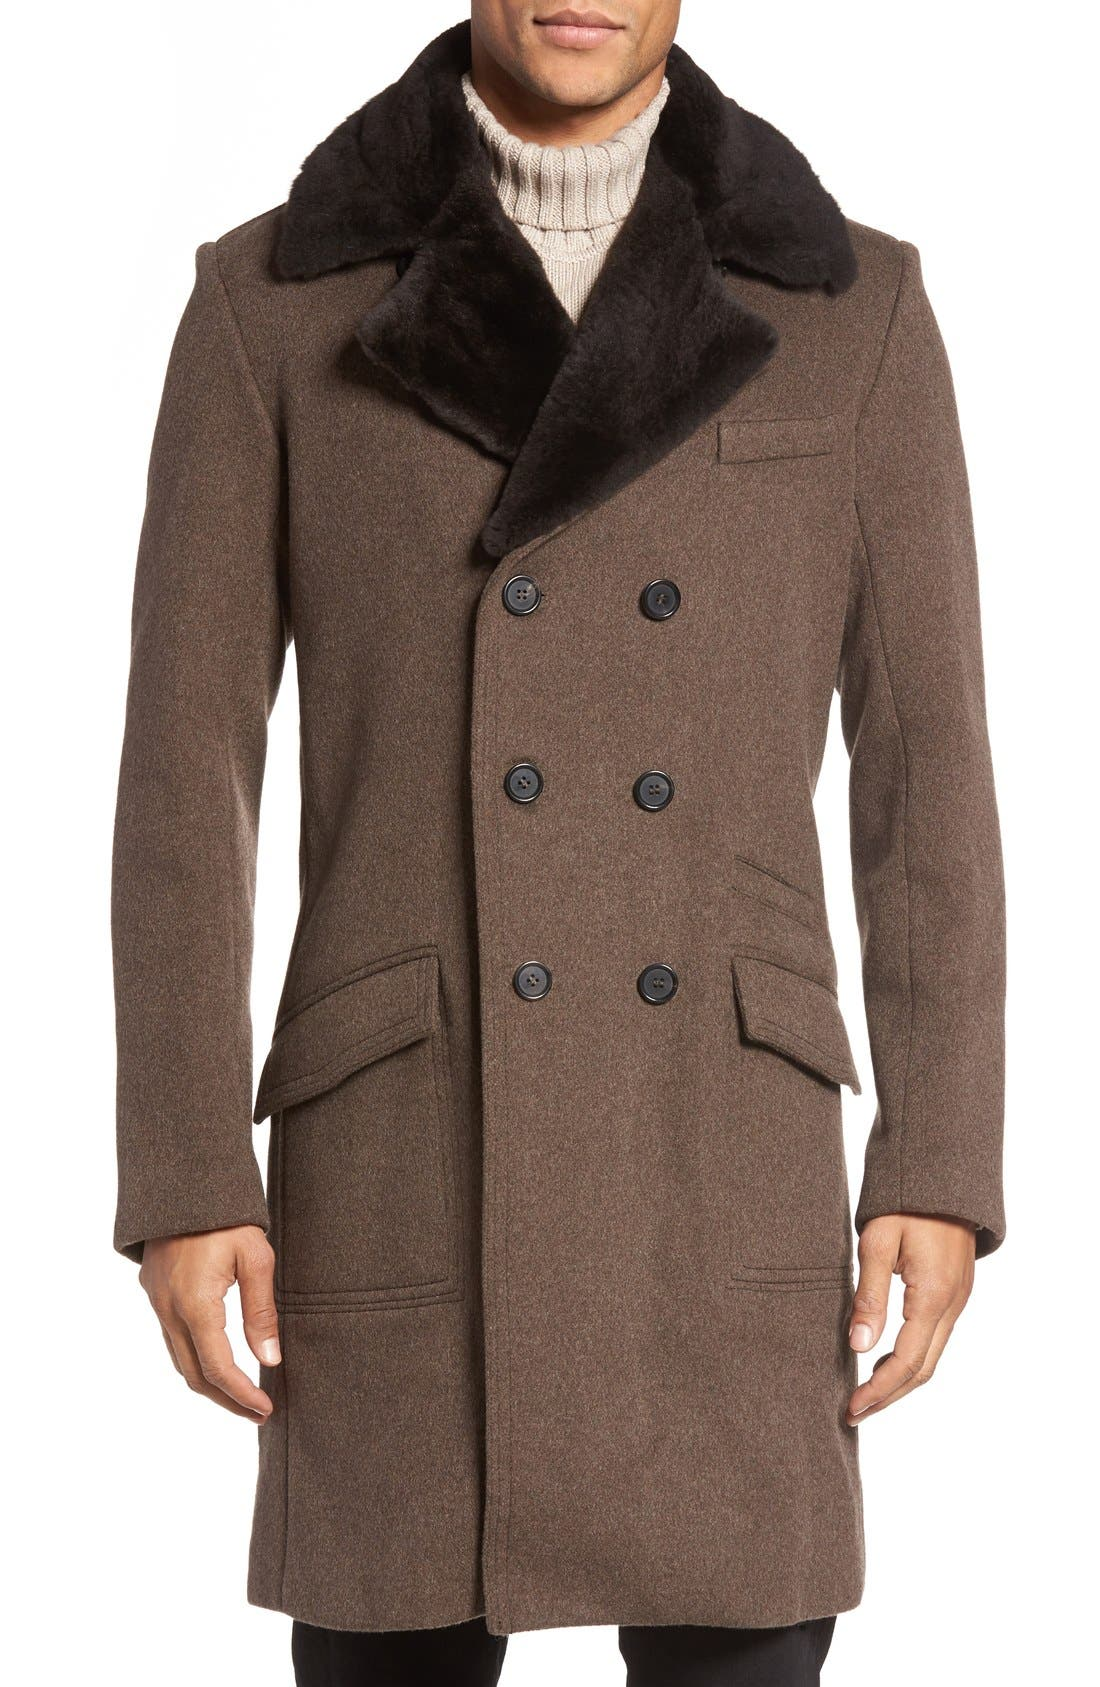 Billy Reid Bowery Cashmere Long Coat with Genuine Nutria Fur Collar